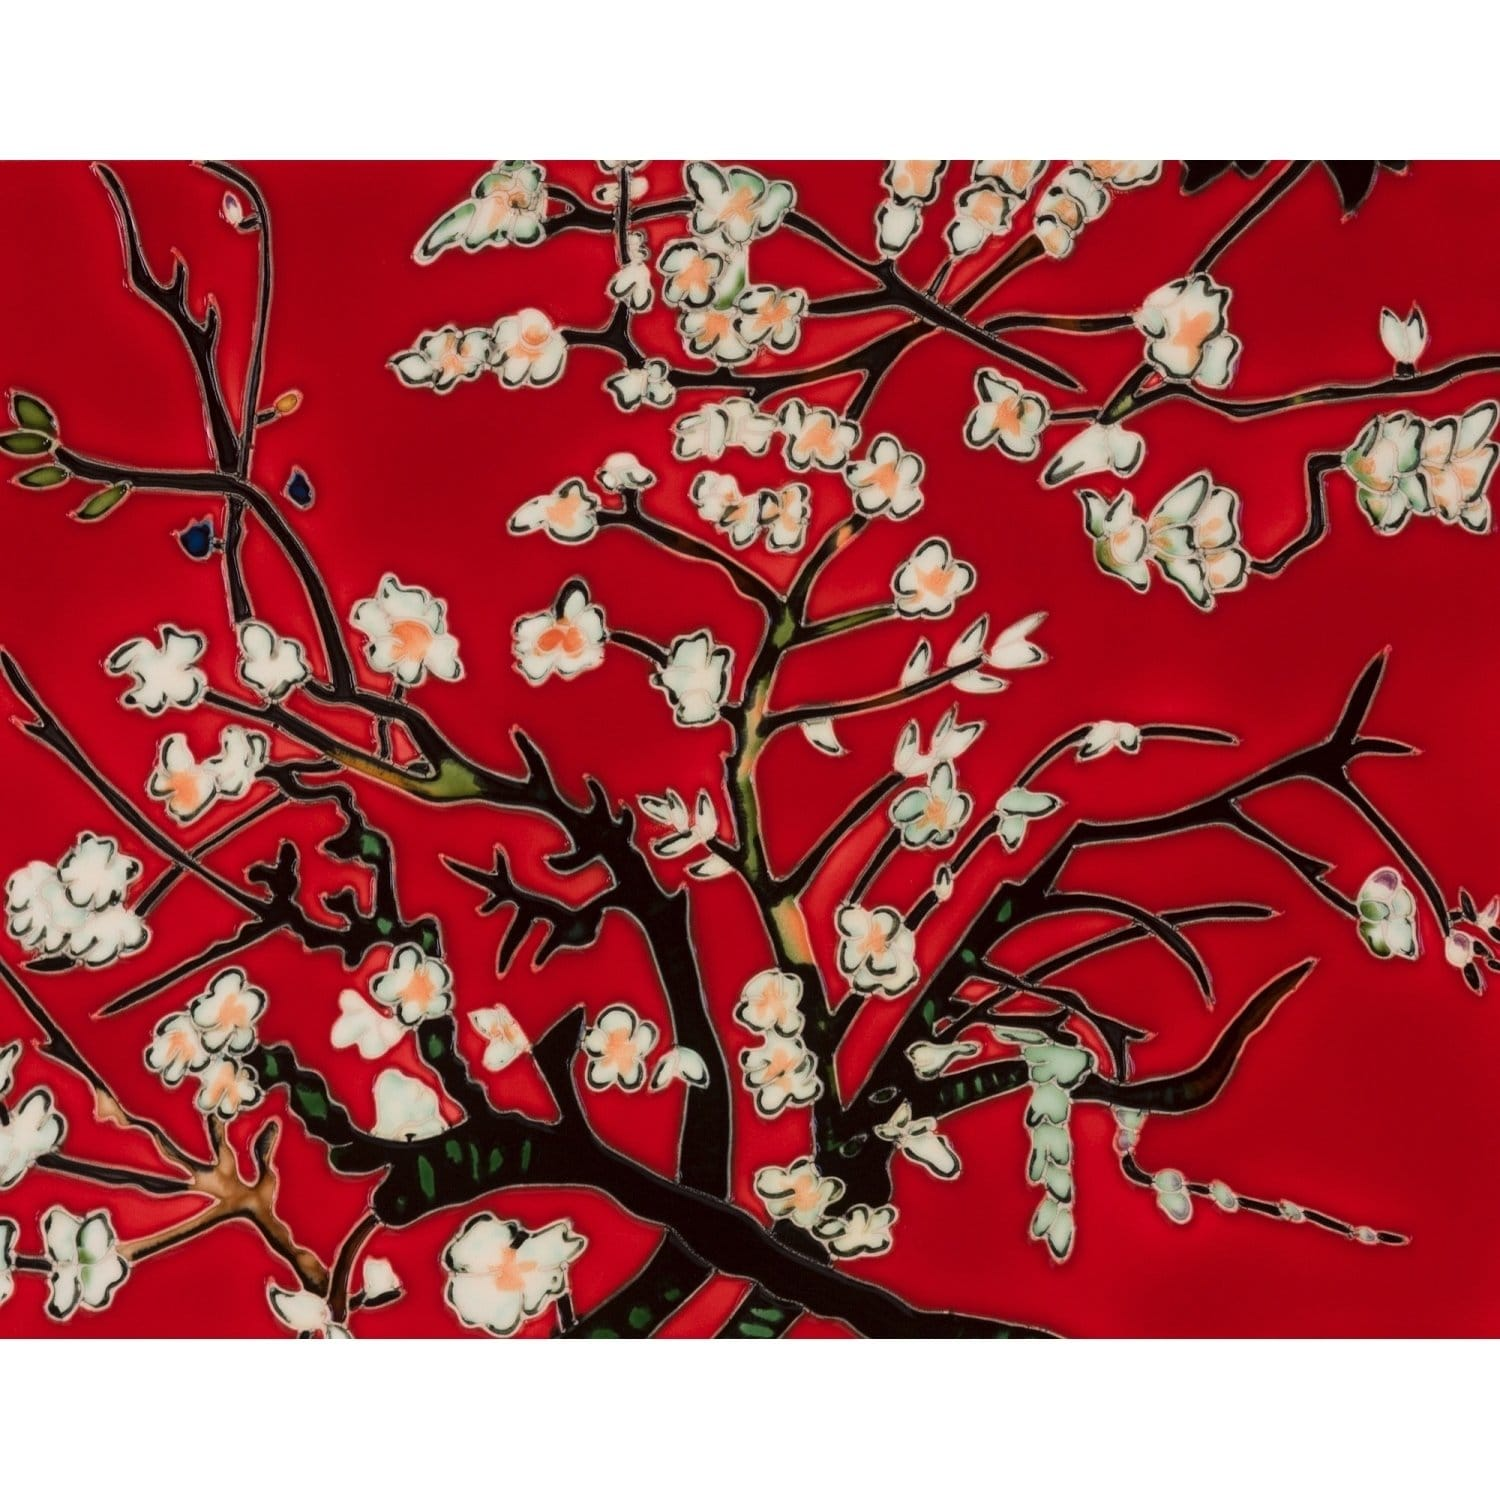 La Pastiche Vincent Van Gogh 'Branches Of An Almond Tree In Blossom, Red' Hand Painted Felt Backed Wall Accent Tile